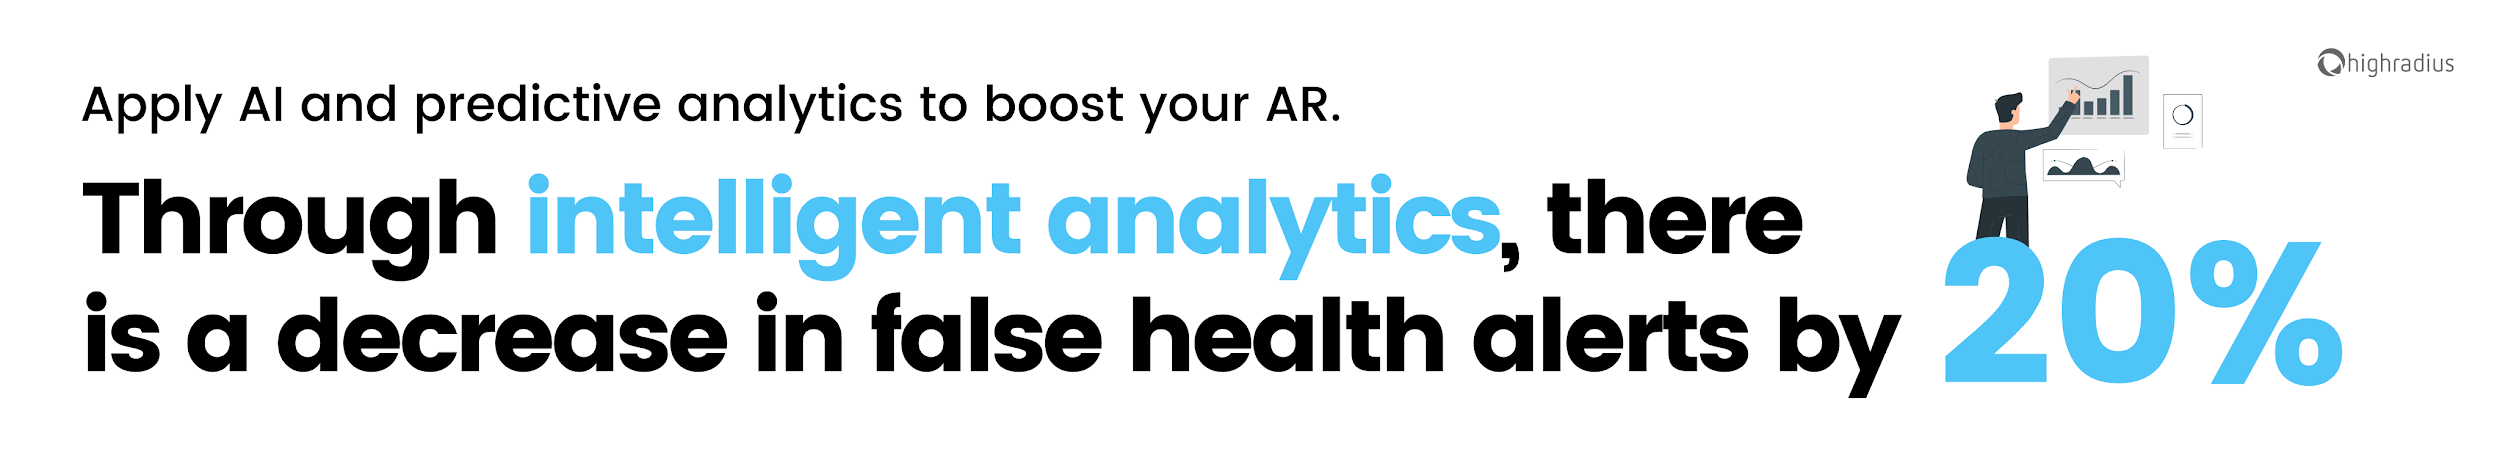 Apply AI to boost your AR